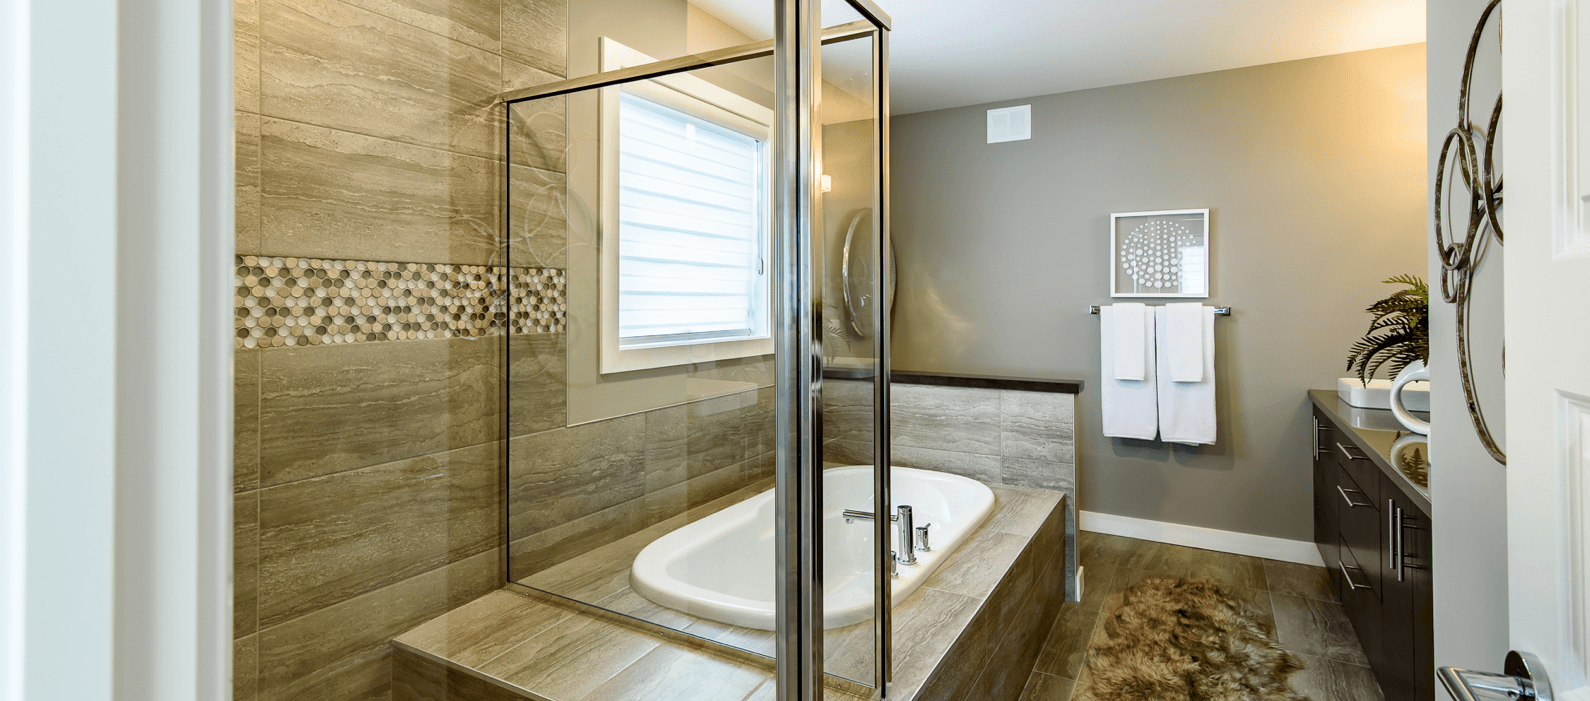 6 Home Features Every First Time Home Buyer Should Have Featured Image